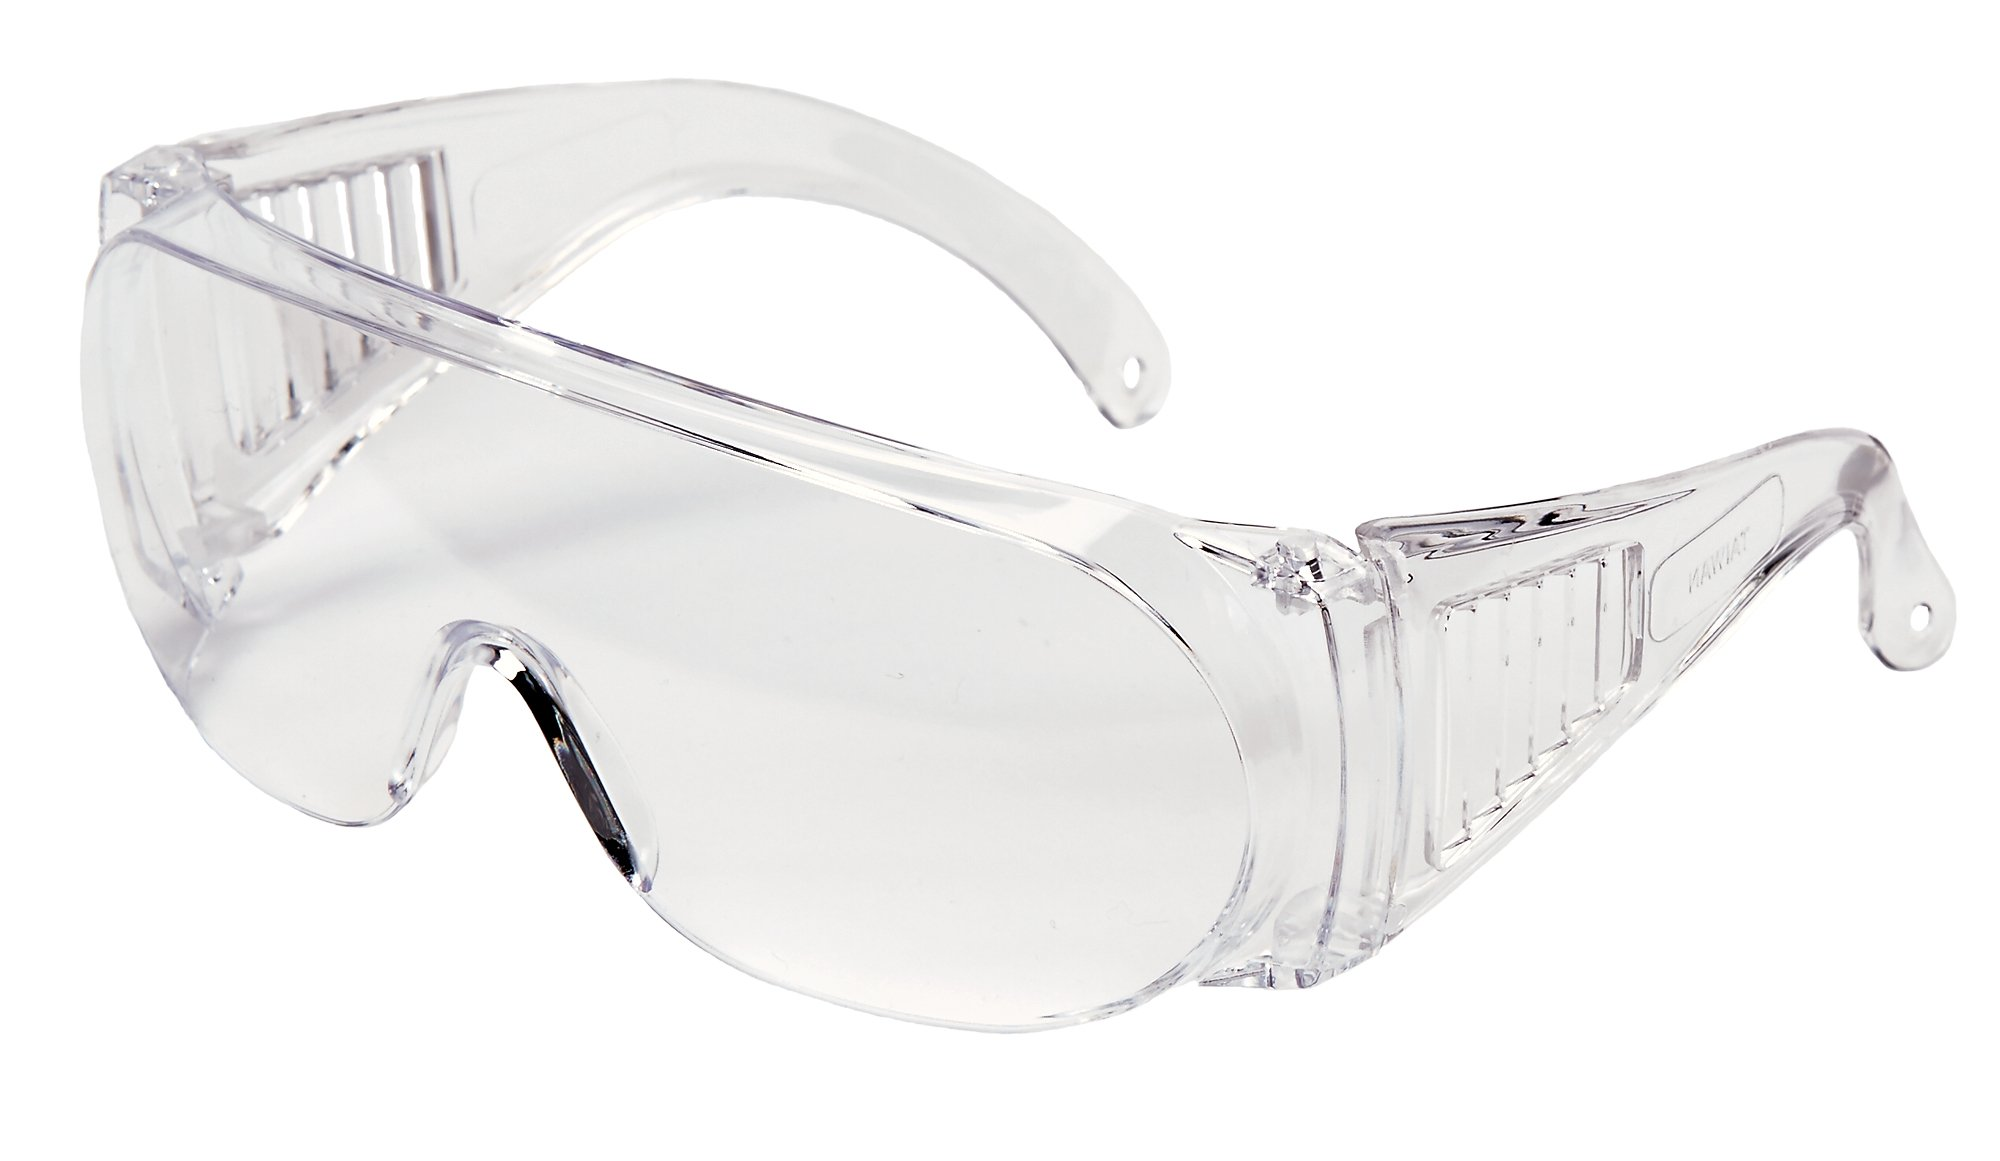 d473ae06f6 Amazon.com   Unique Over Specs Eye Guard   Racquetball Goggles   Sports    Outdoors